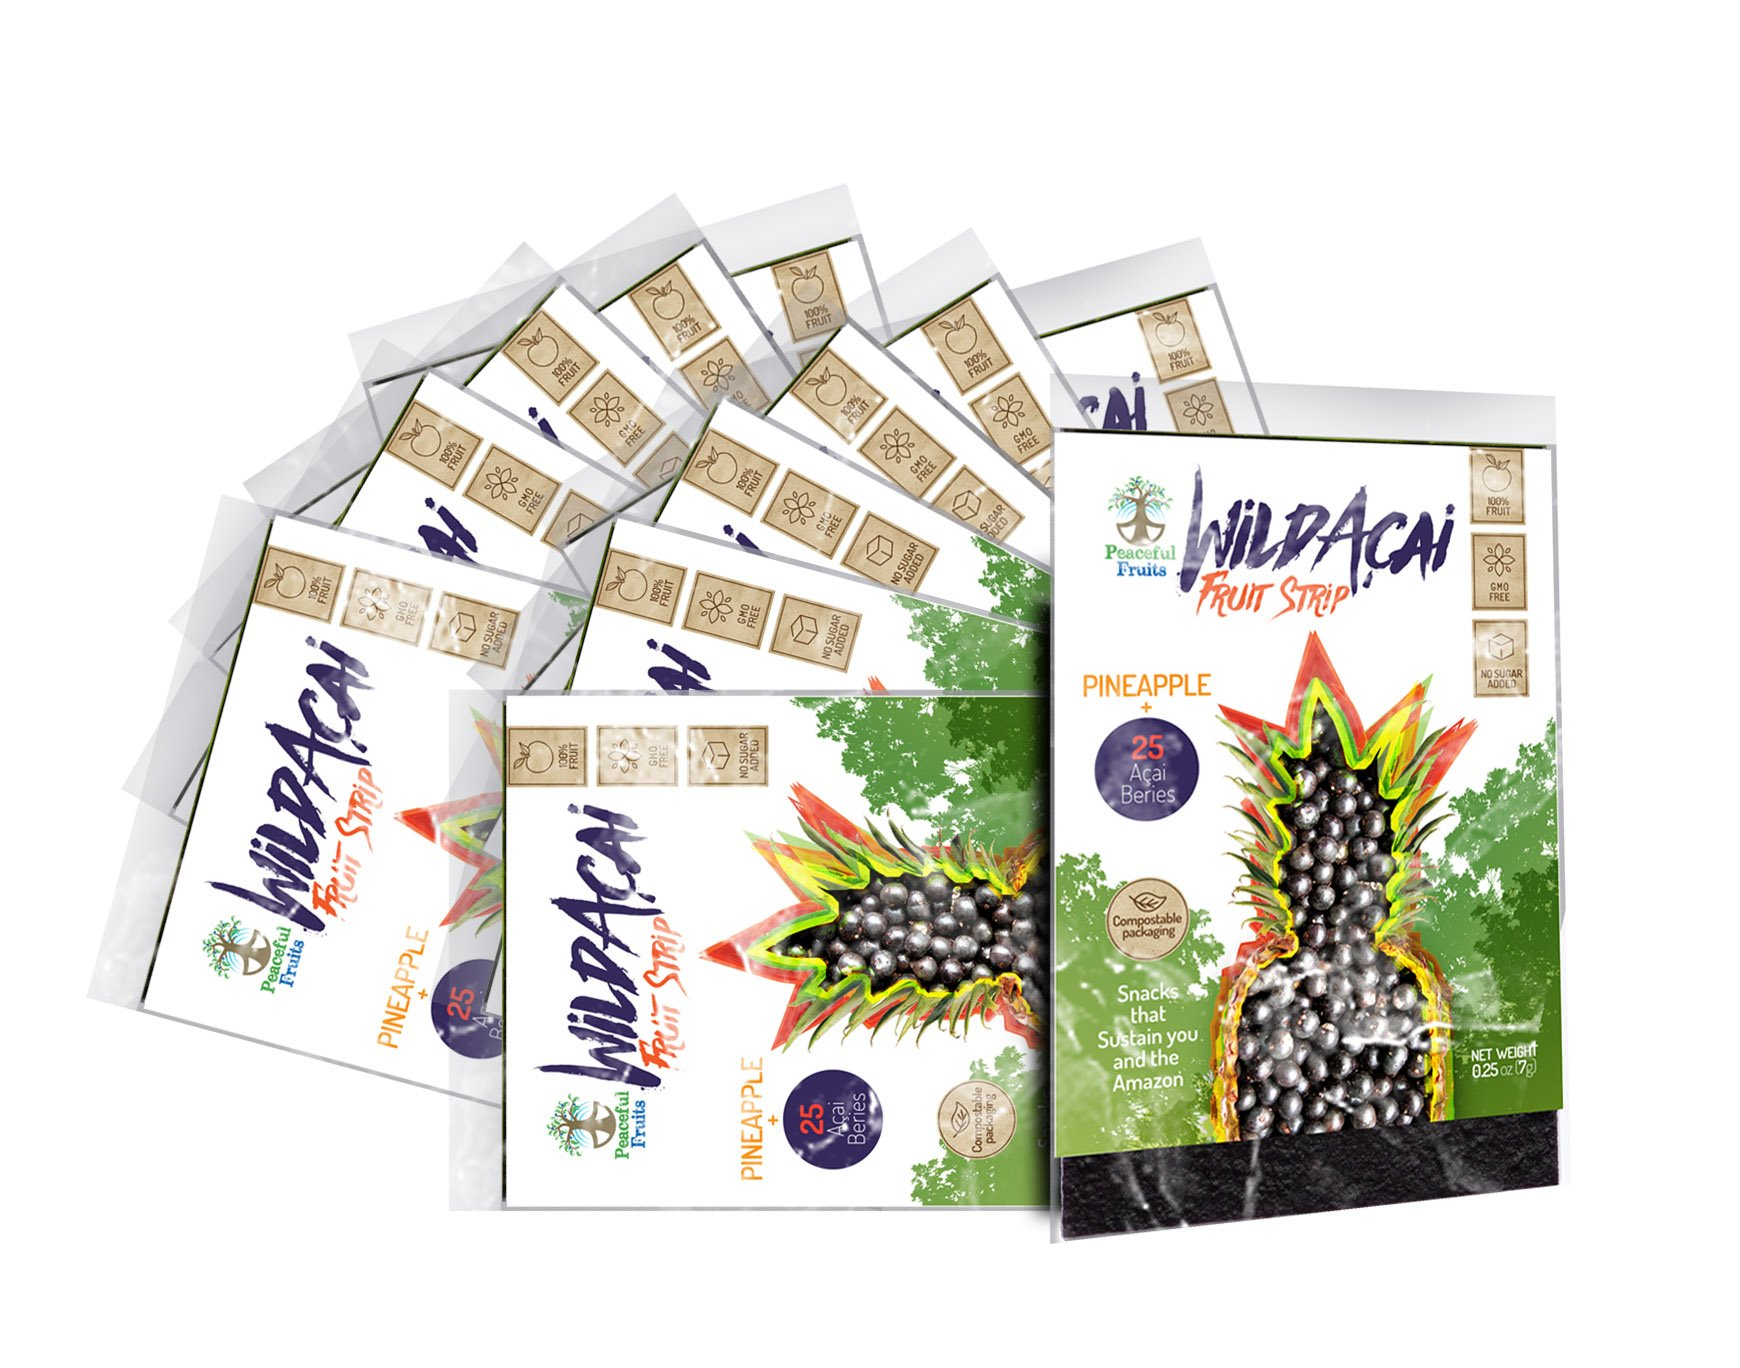 Peaceful Fruits 100% Fruit Wild Acai Super-fruit Strips with Pineapple (pack of 12 snacks)